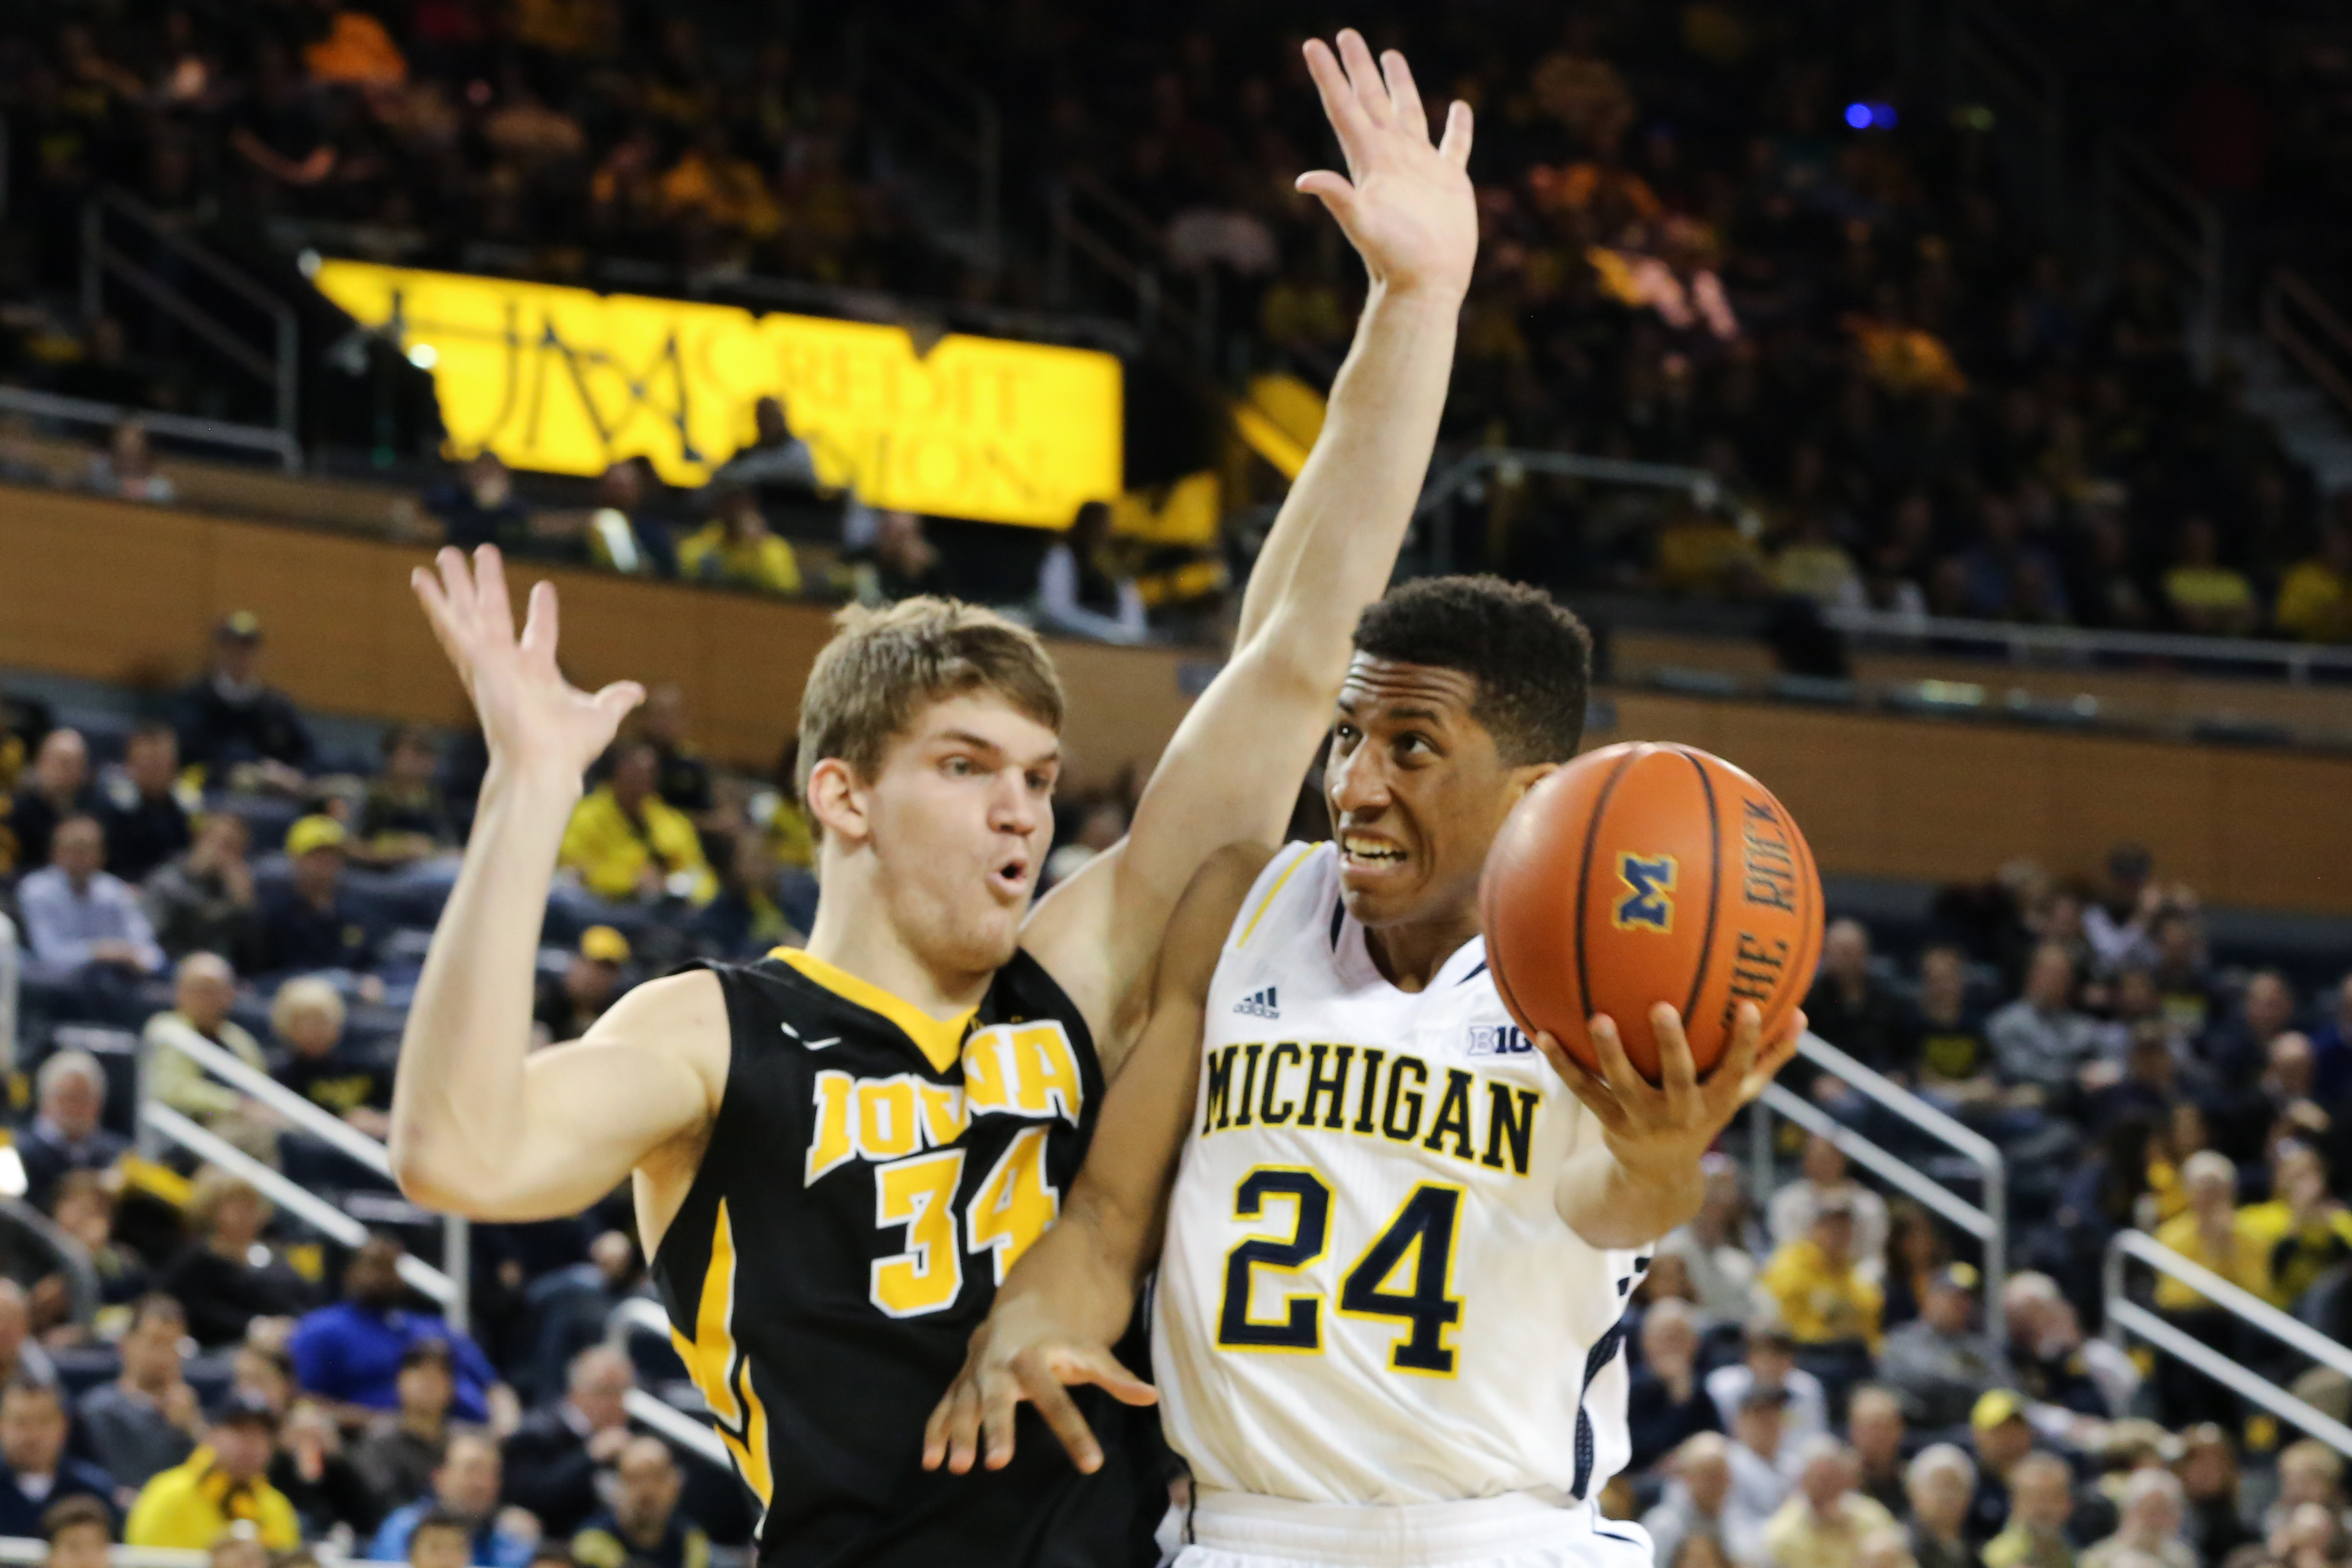 Michigan 54, Iowa 72-16